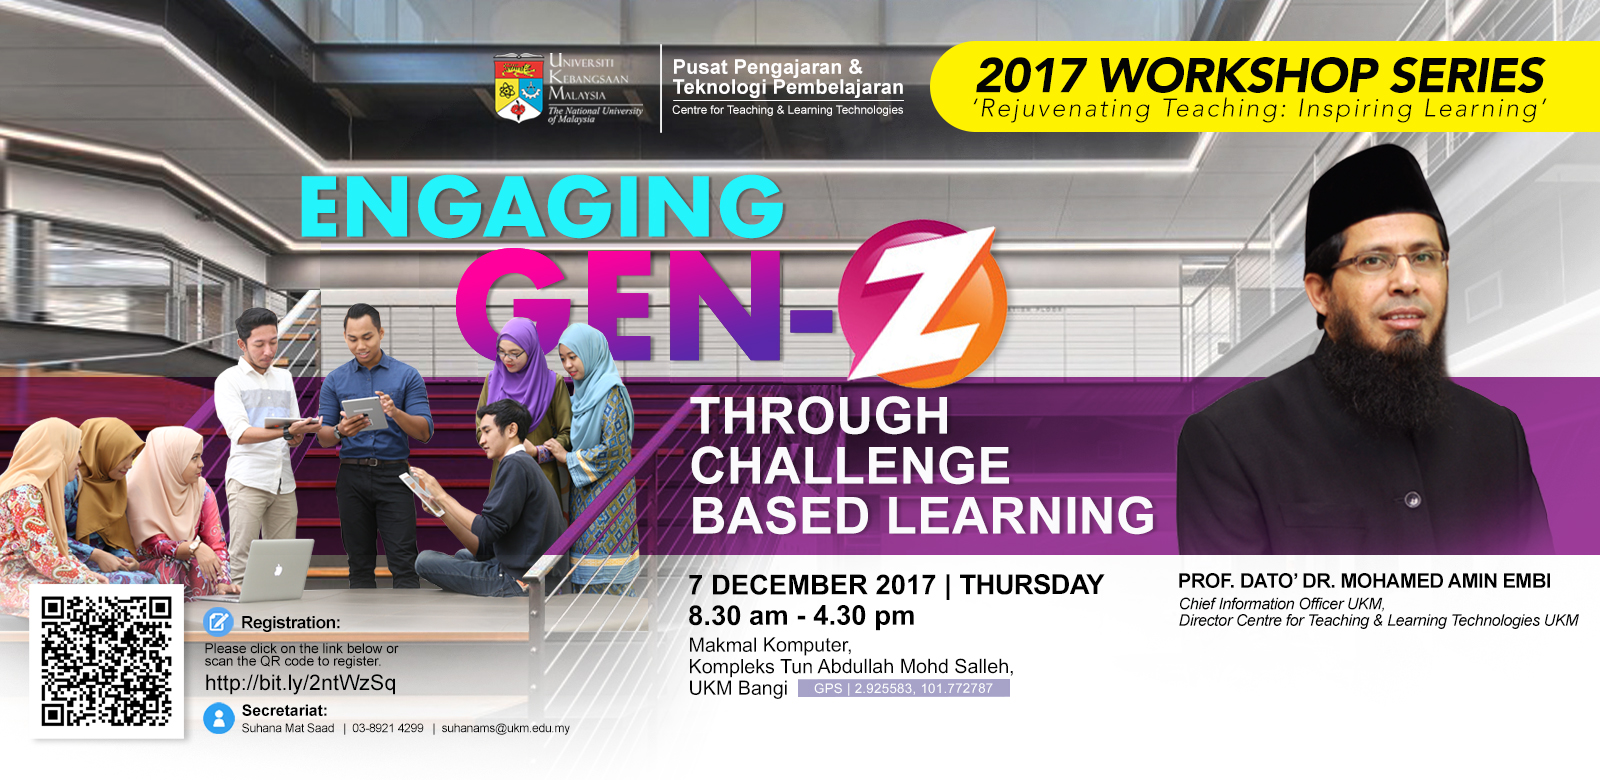 ENGAGING GEN-Z THROUGH CHALLENGE BASED LEARNING